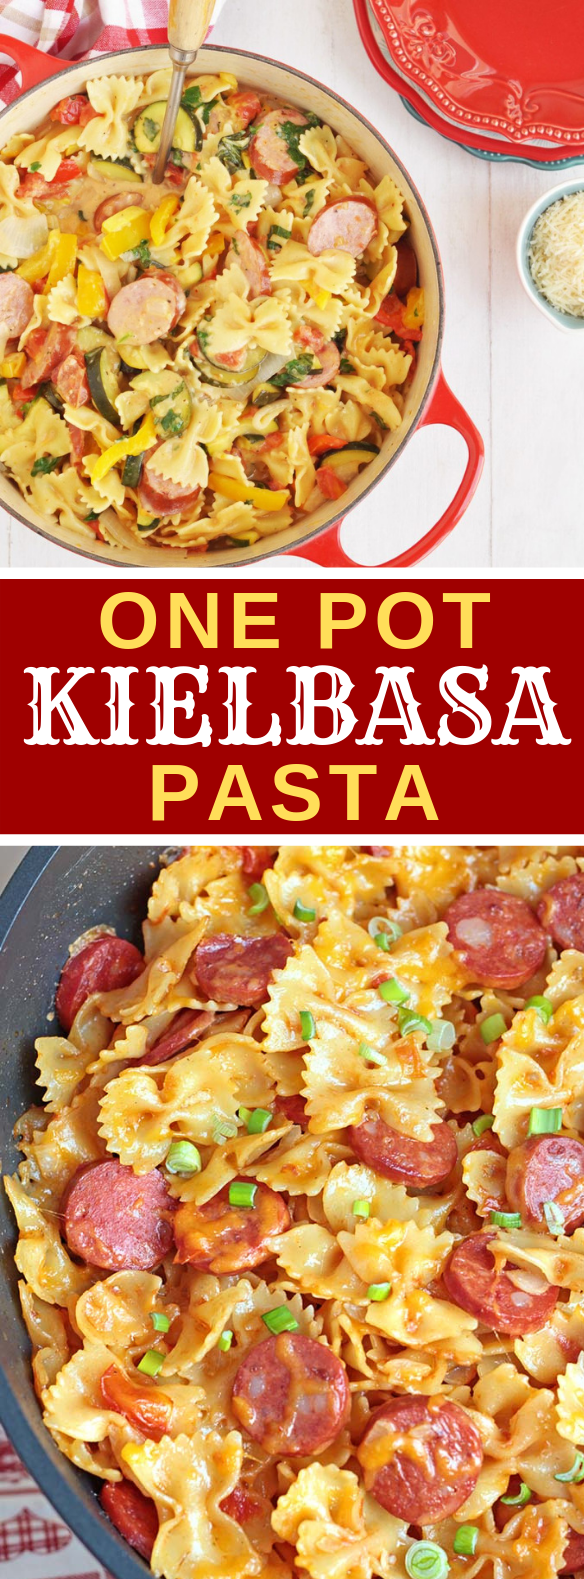 One Pot Kielbasa Pasta #dinner #maindish